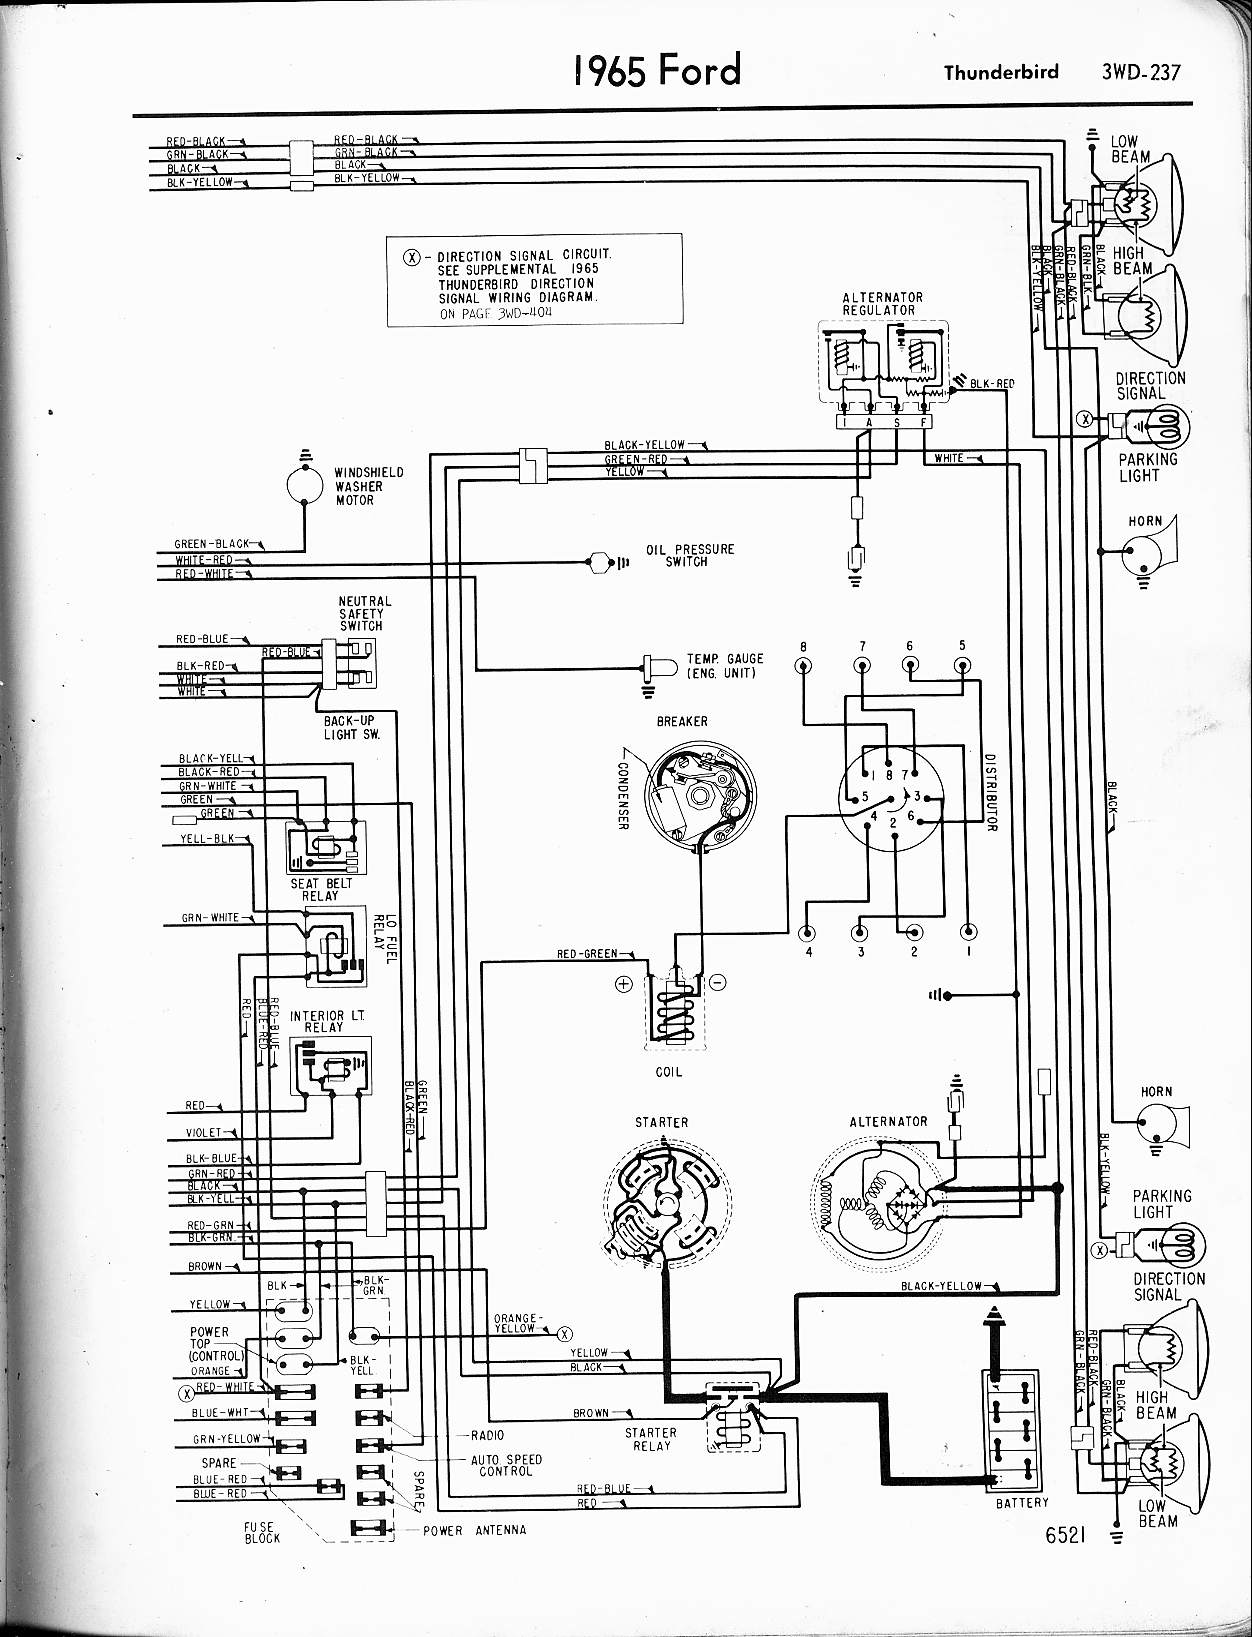 1965 f 100 alt gauge 70 amp circuit breaker ford truck enthusiasts 66 ford f100 wiring diagram www oldcarmanualproject com t re5765 237 jpg